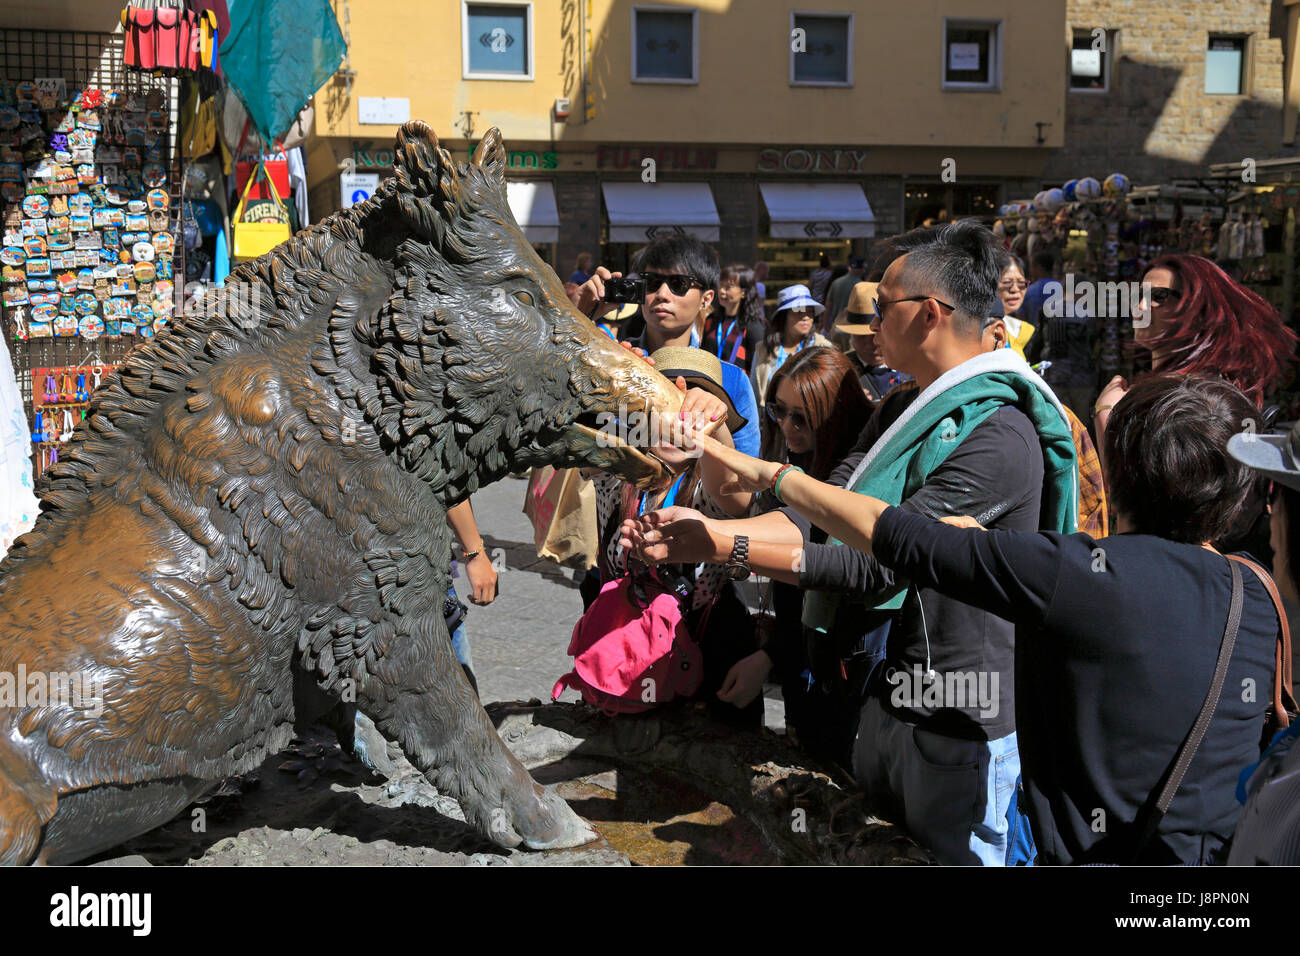 Japaneese tourists rubbing the snout of Il Porcellino a bronze fountain of a boar to ensure their return, Mercato - Stock Image